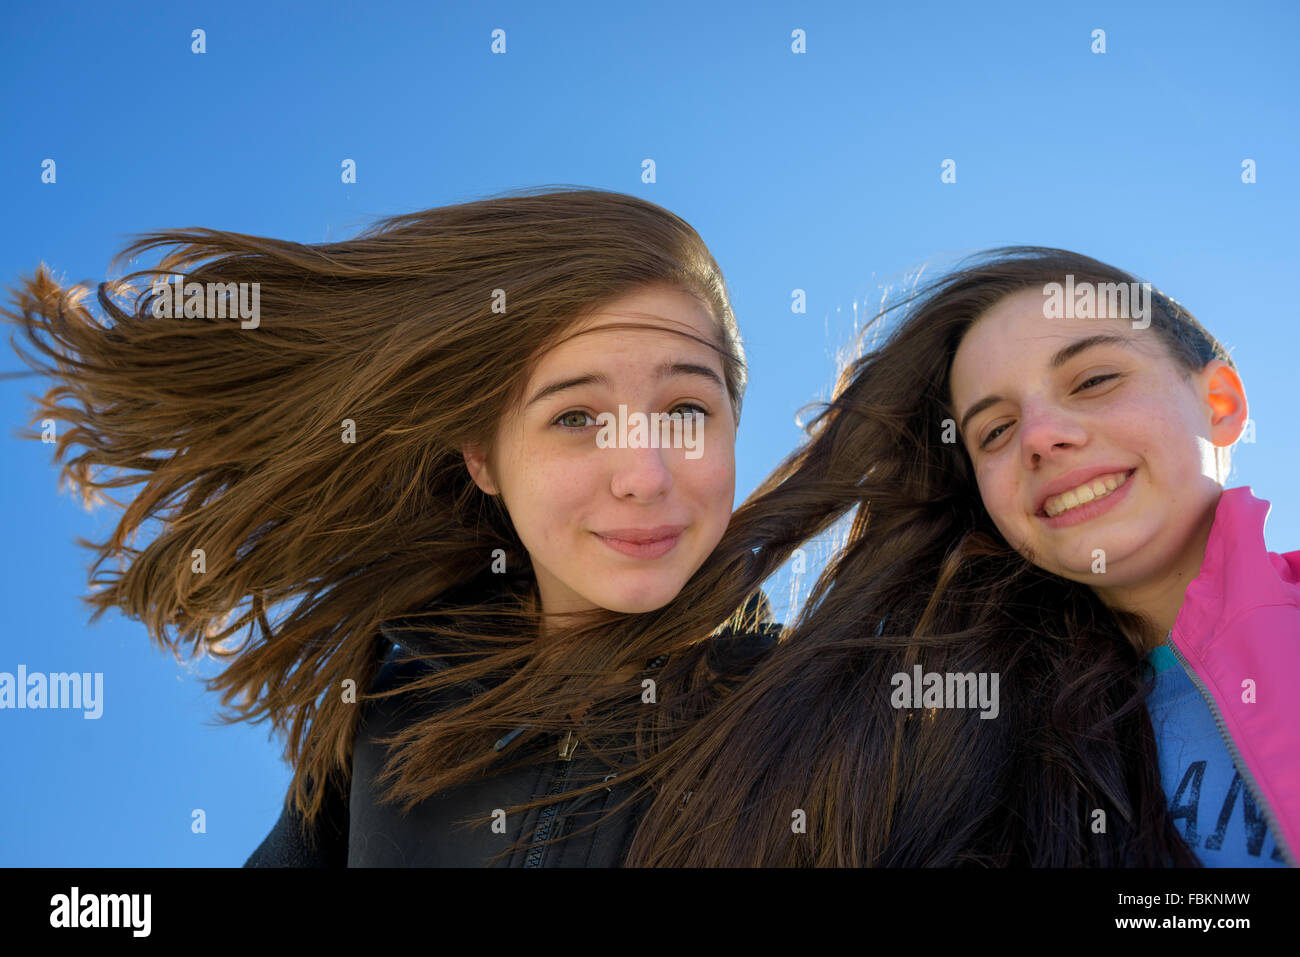 Young teens taking a selfie on a windy beach Cape May New Jersey. - Stock Image